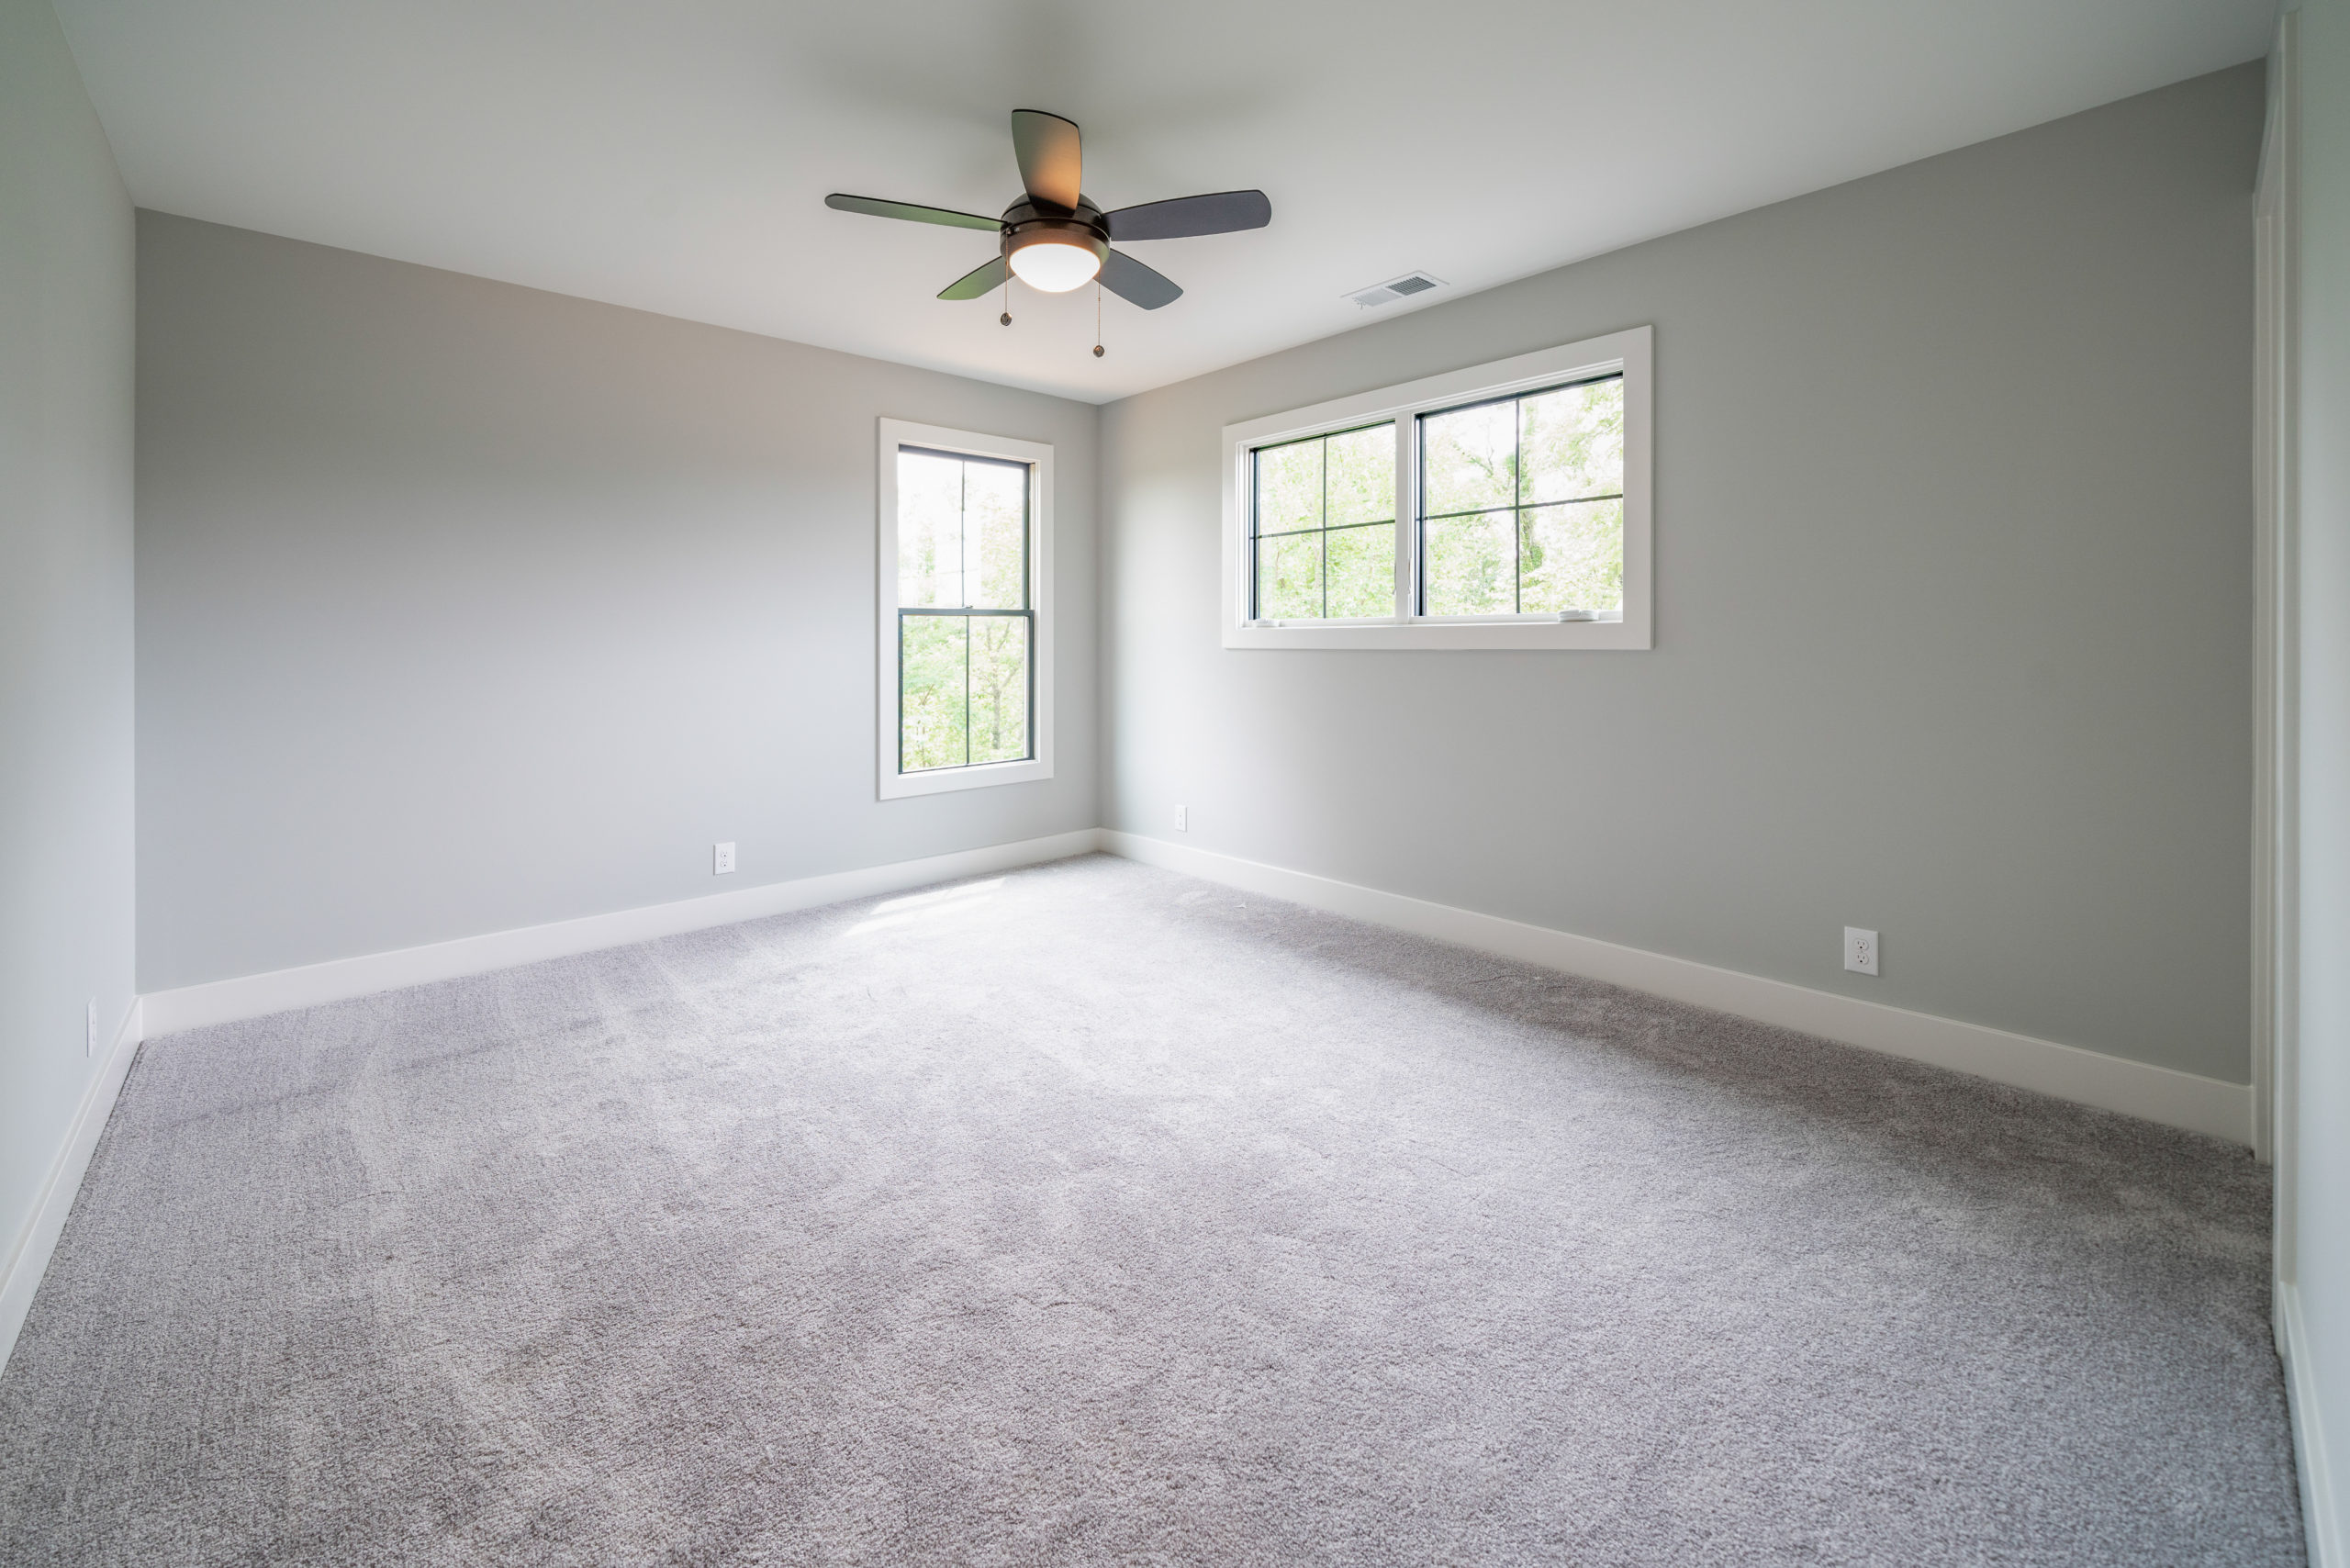 gray carpeted bedroom with ceiling fan